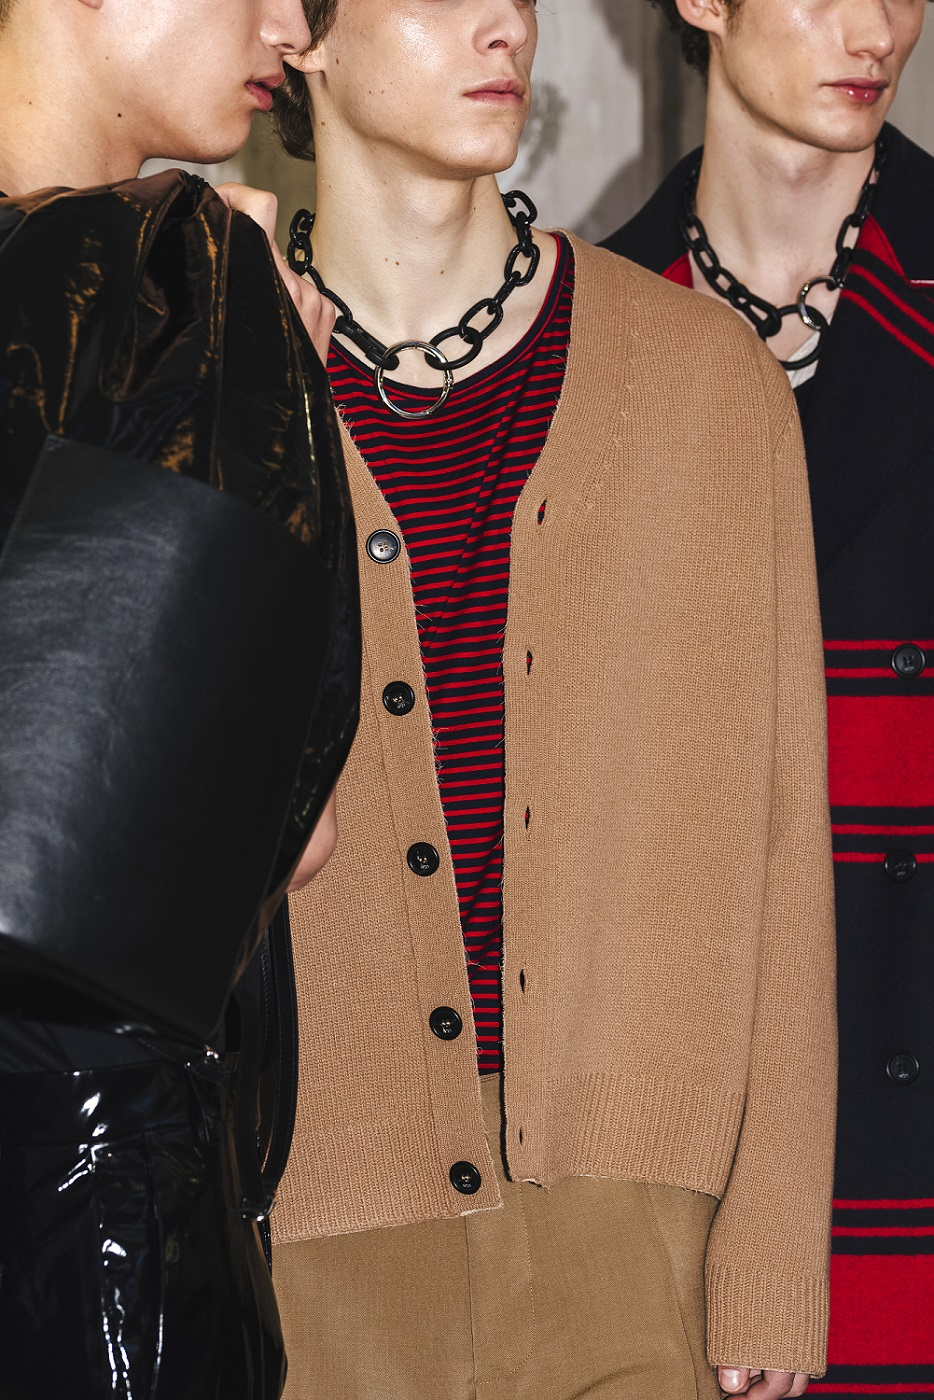 male model with brown cardigan and male model with black and red stripe jacket